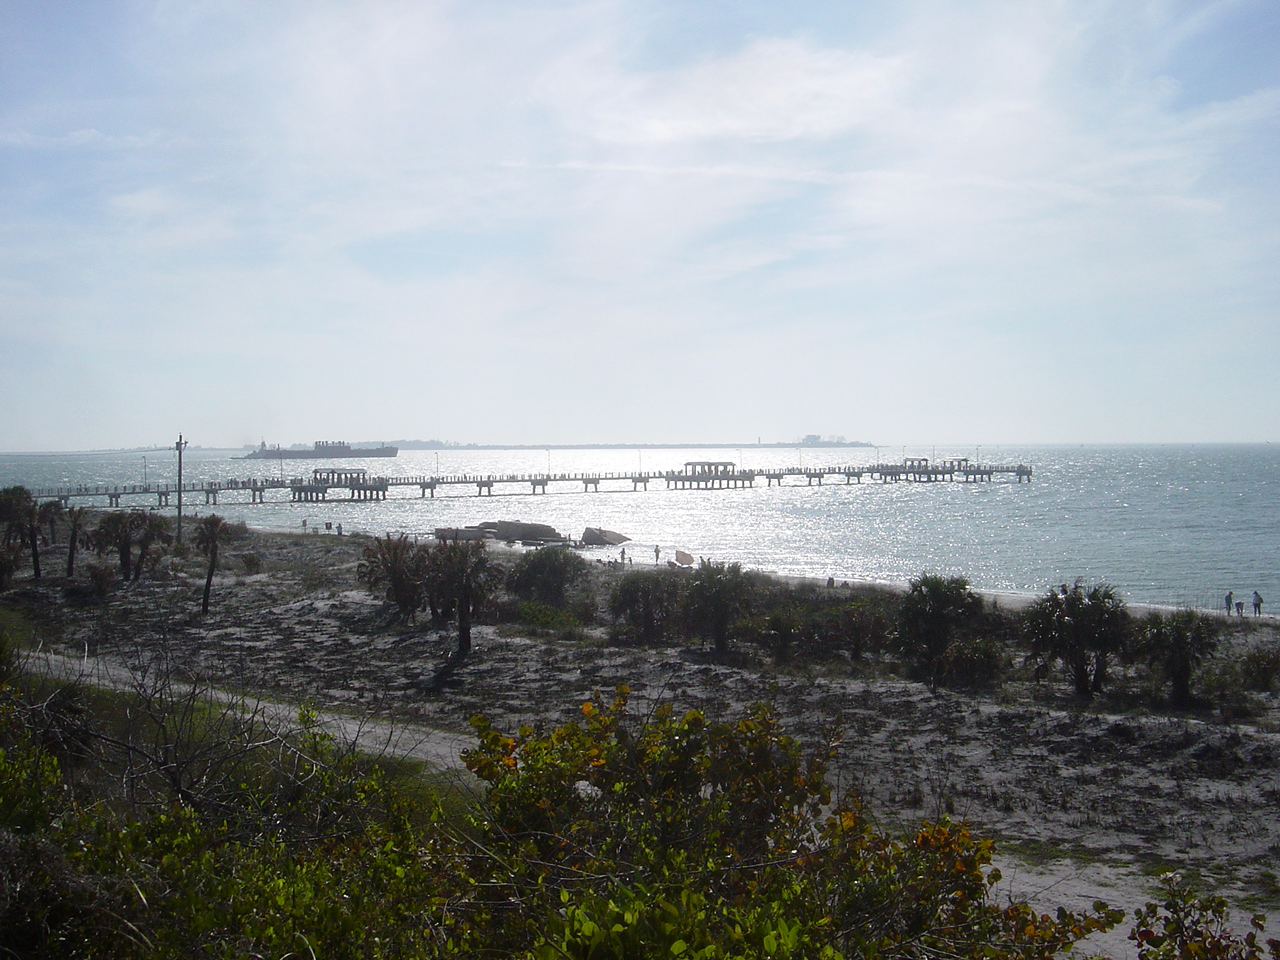 Fort de soto park military wiki fandom powered by wikia for Fort desoto fishing pier